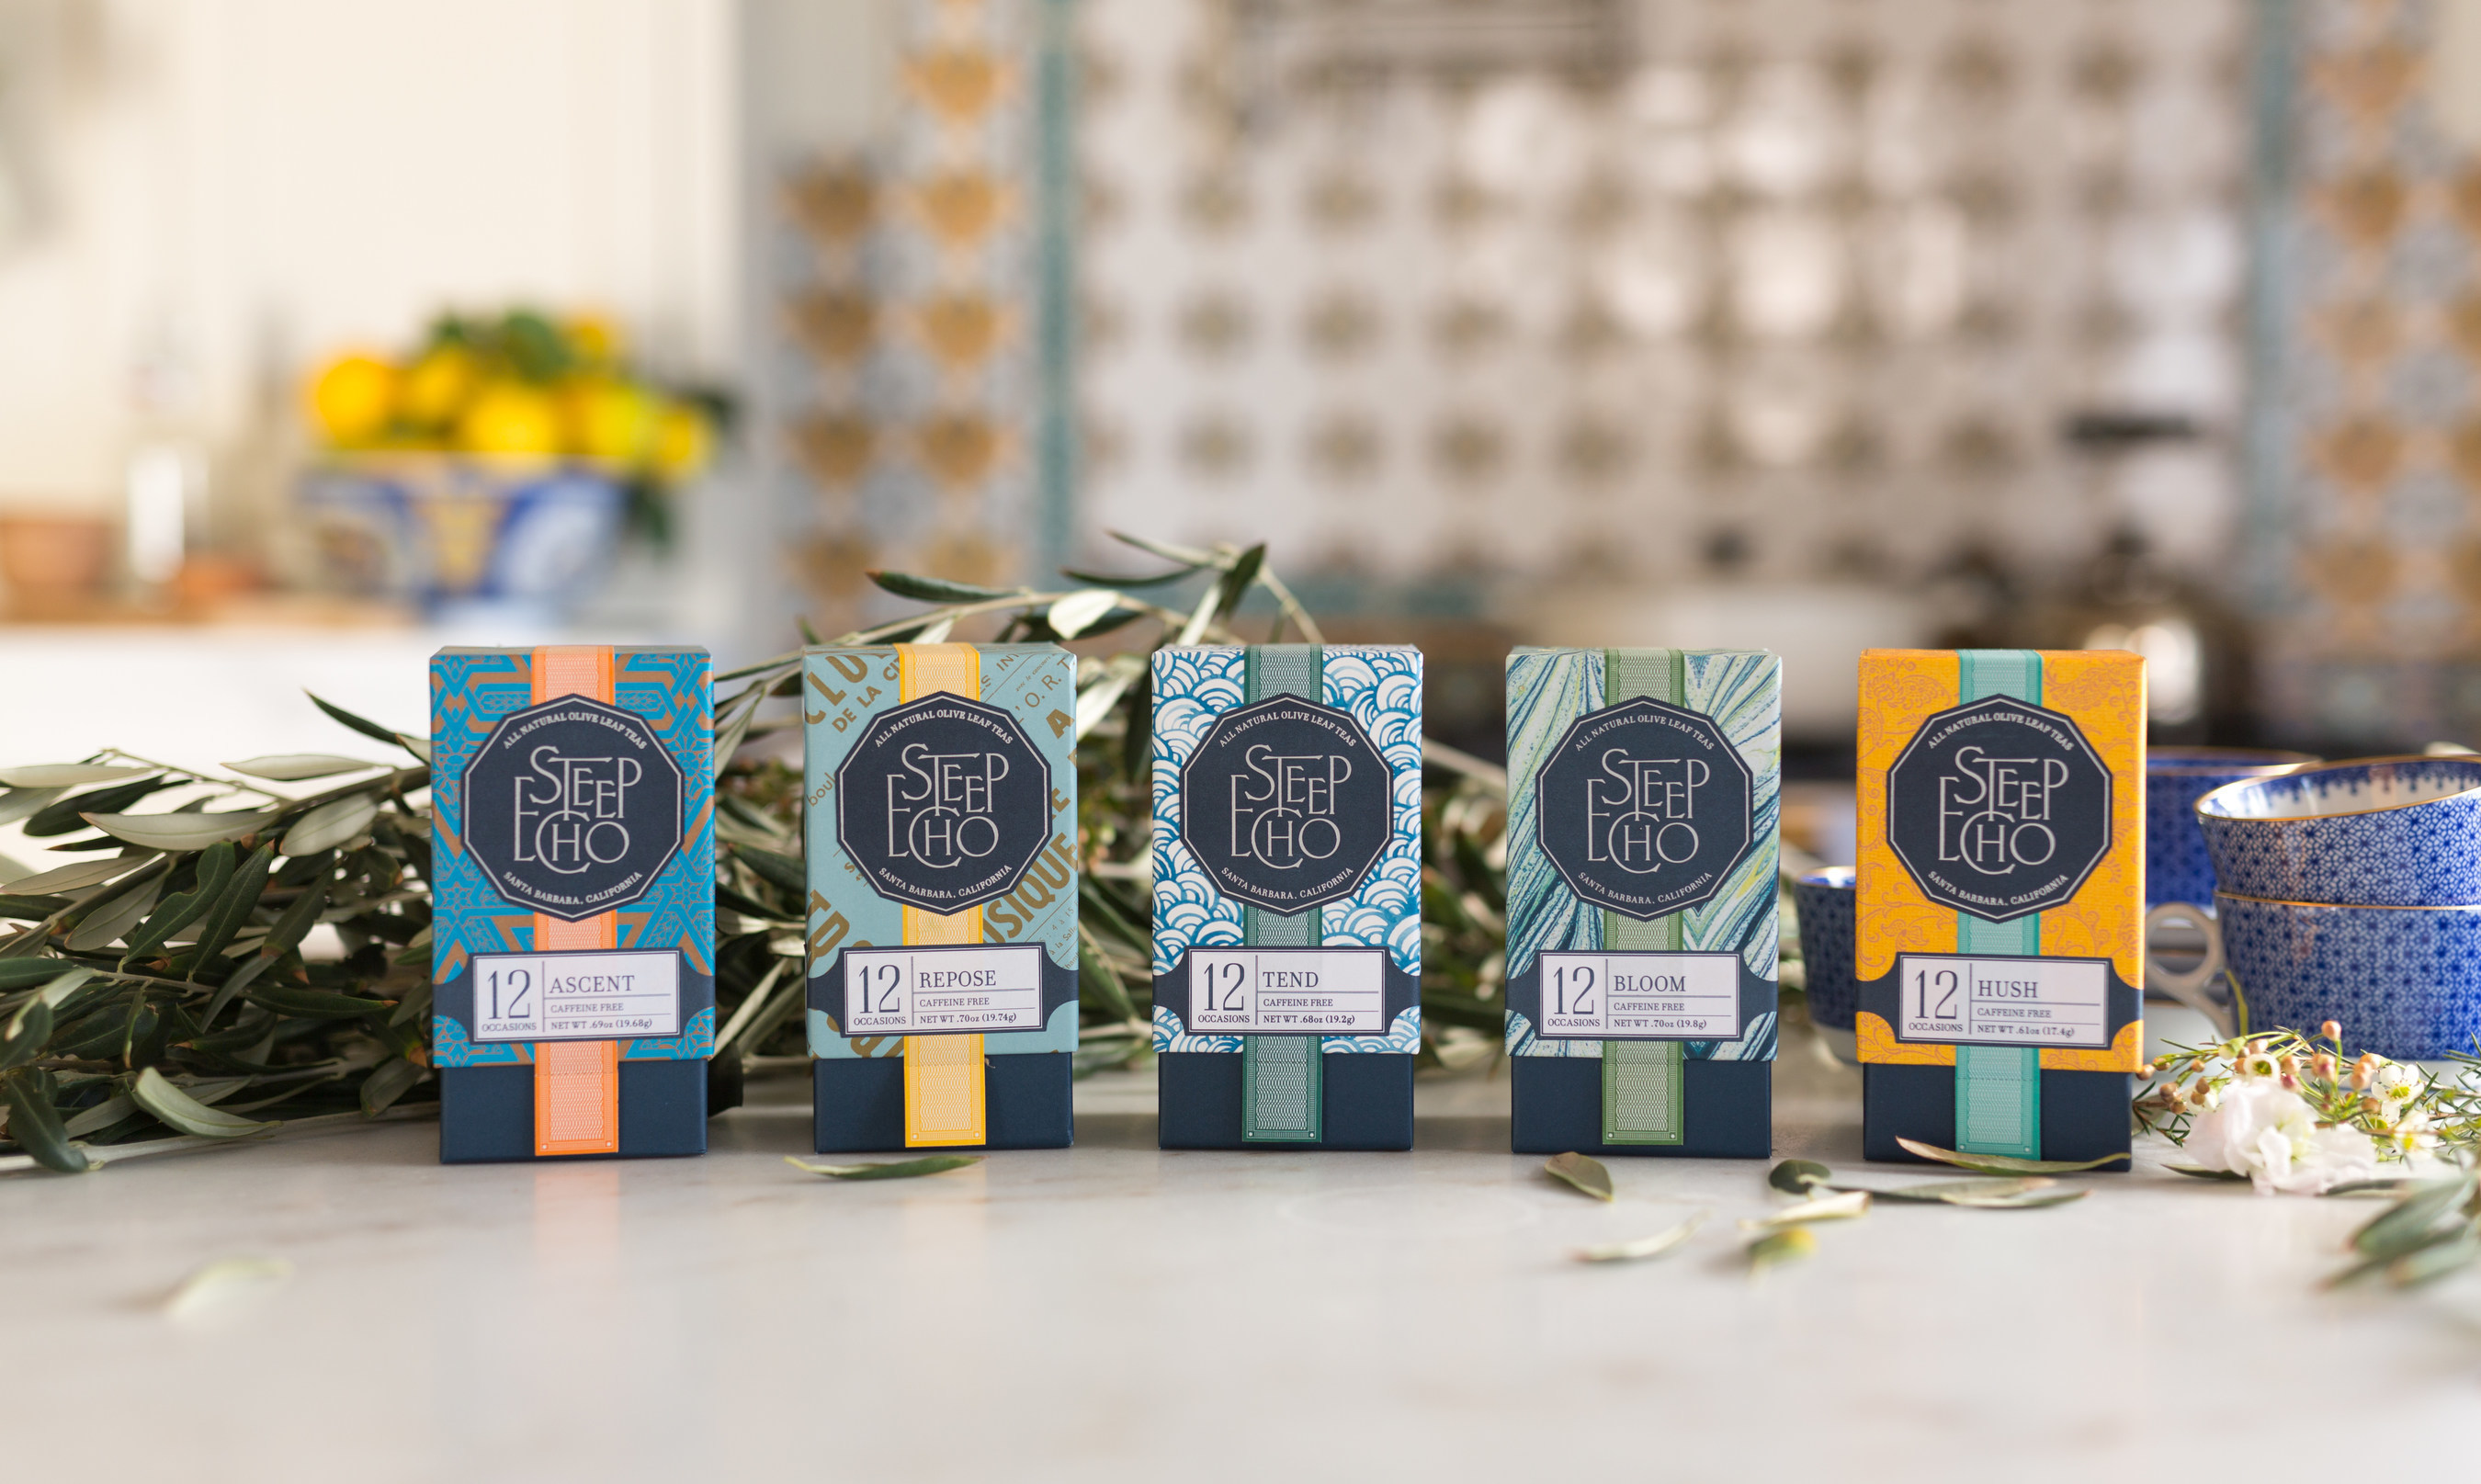 Steep Echo is a new tea company selling all-natural olive leaf teas designed to accentuate a healthy lifestyle. Each of the five caffeine-free blends in the collection is approachable, yet offers a stark contrast to other teas on the market because of the complex and sophisticated flavor profiles.  Partnering with some of the best artisans in the tea trade, Steep Echo teas combine hand-harvested and dried olive leaves from the Bel Lavoro orchards in Santa Barbara ...